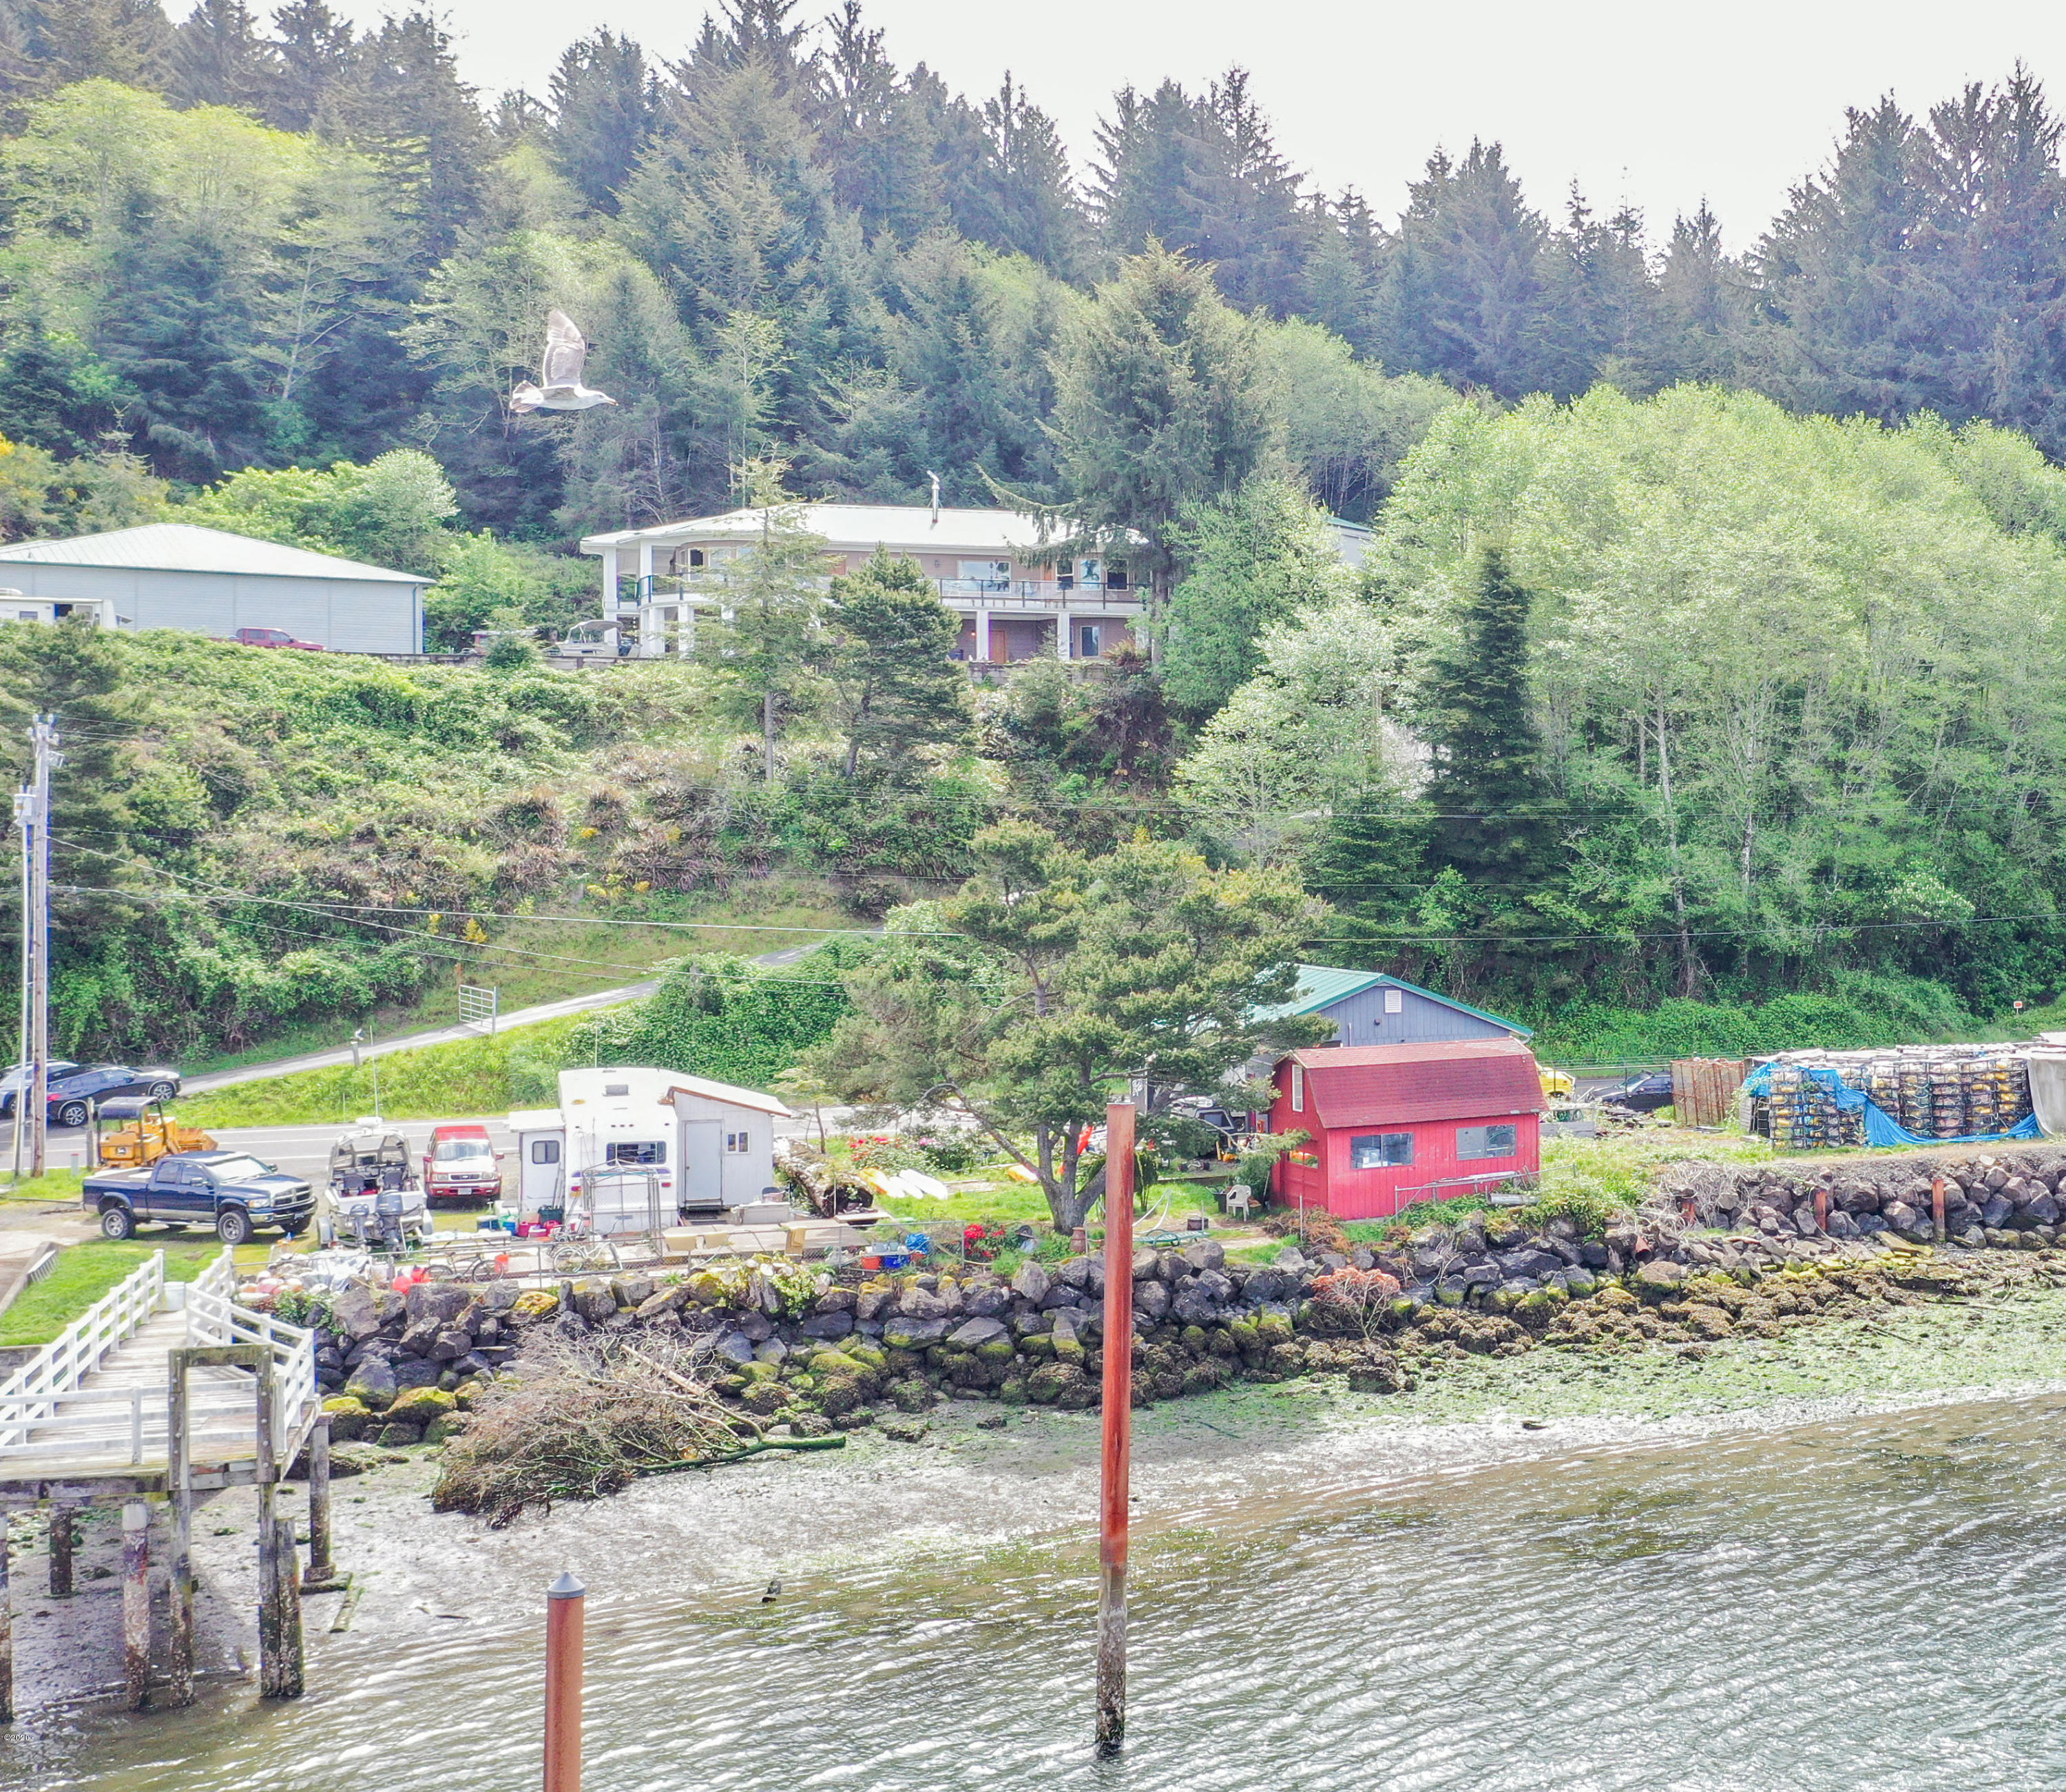 4532 Yaquina Bay Rd, Newport, OR 97365 - 4532 bay